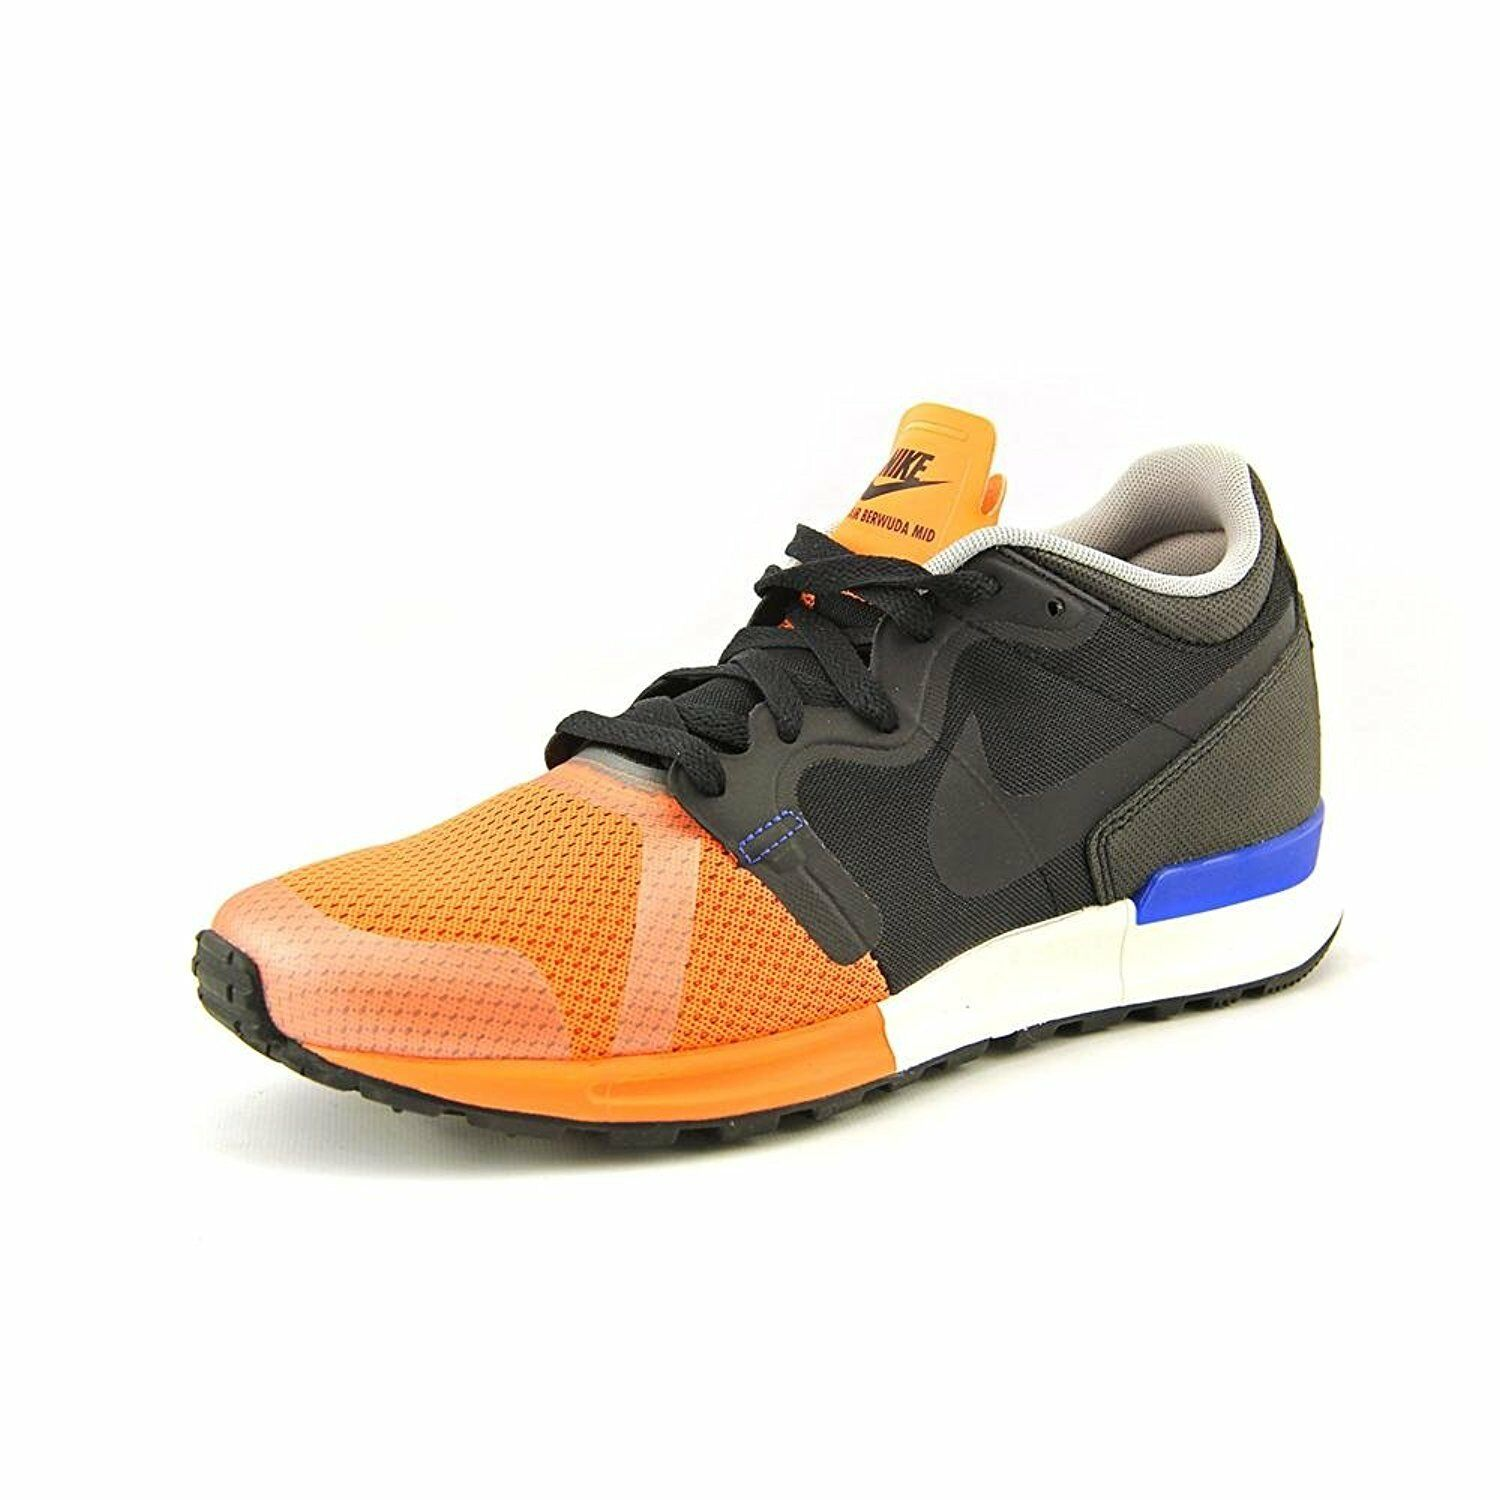 Nike Berwuda Mid QS Limited Release, Men's Running shoes Size 8 (599473-008)